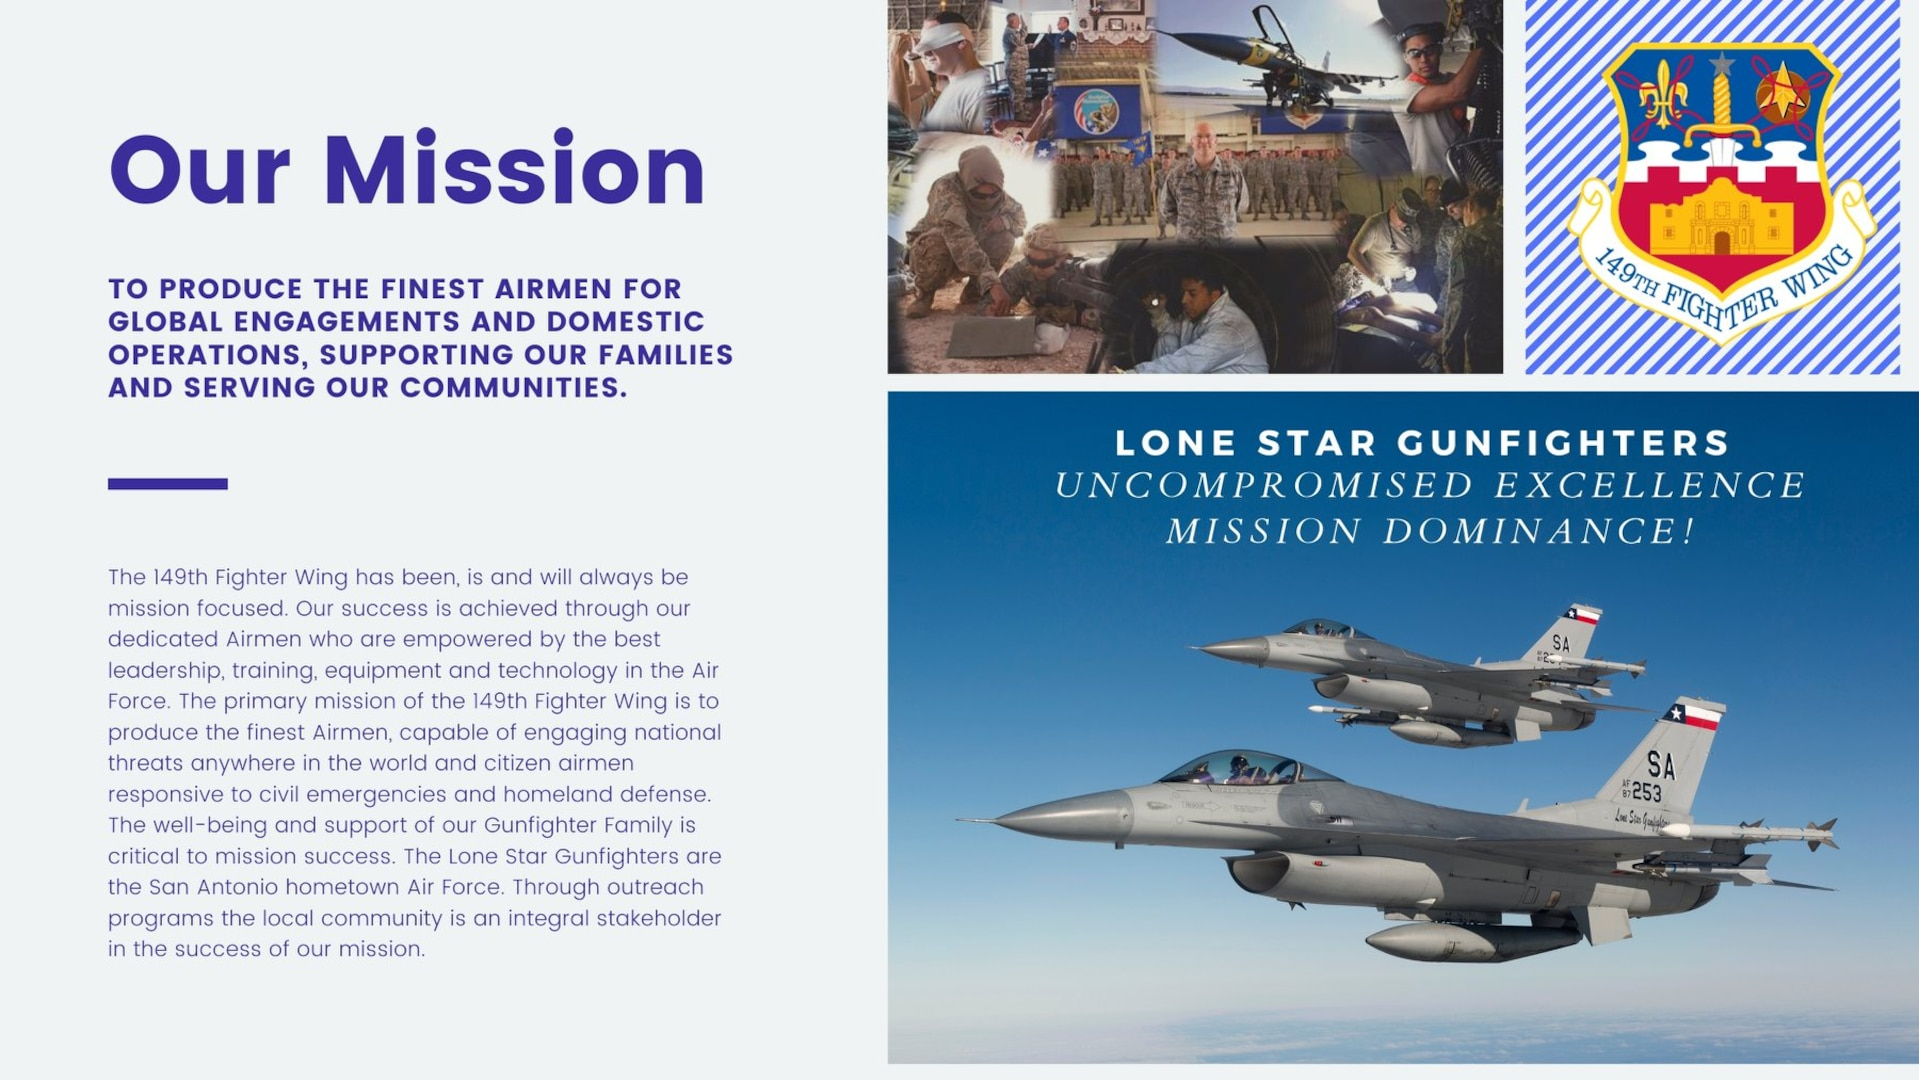 The Air National Guard's 149th Fighter Wing will fly over hospitals and medical support facilities in parts of Corpus Christi, Laredo and Lubbock May 11 as a way to honor the selfless sacrifice of all the health care workers, first responders, military and other personnel at the forefront of this crisis.